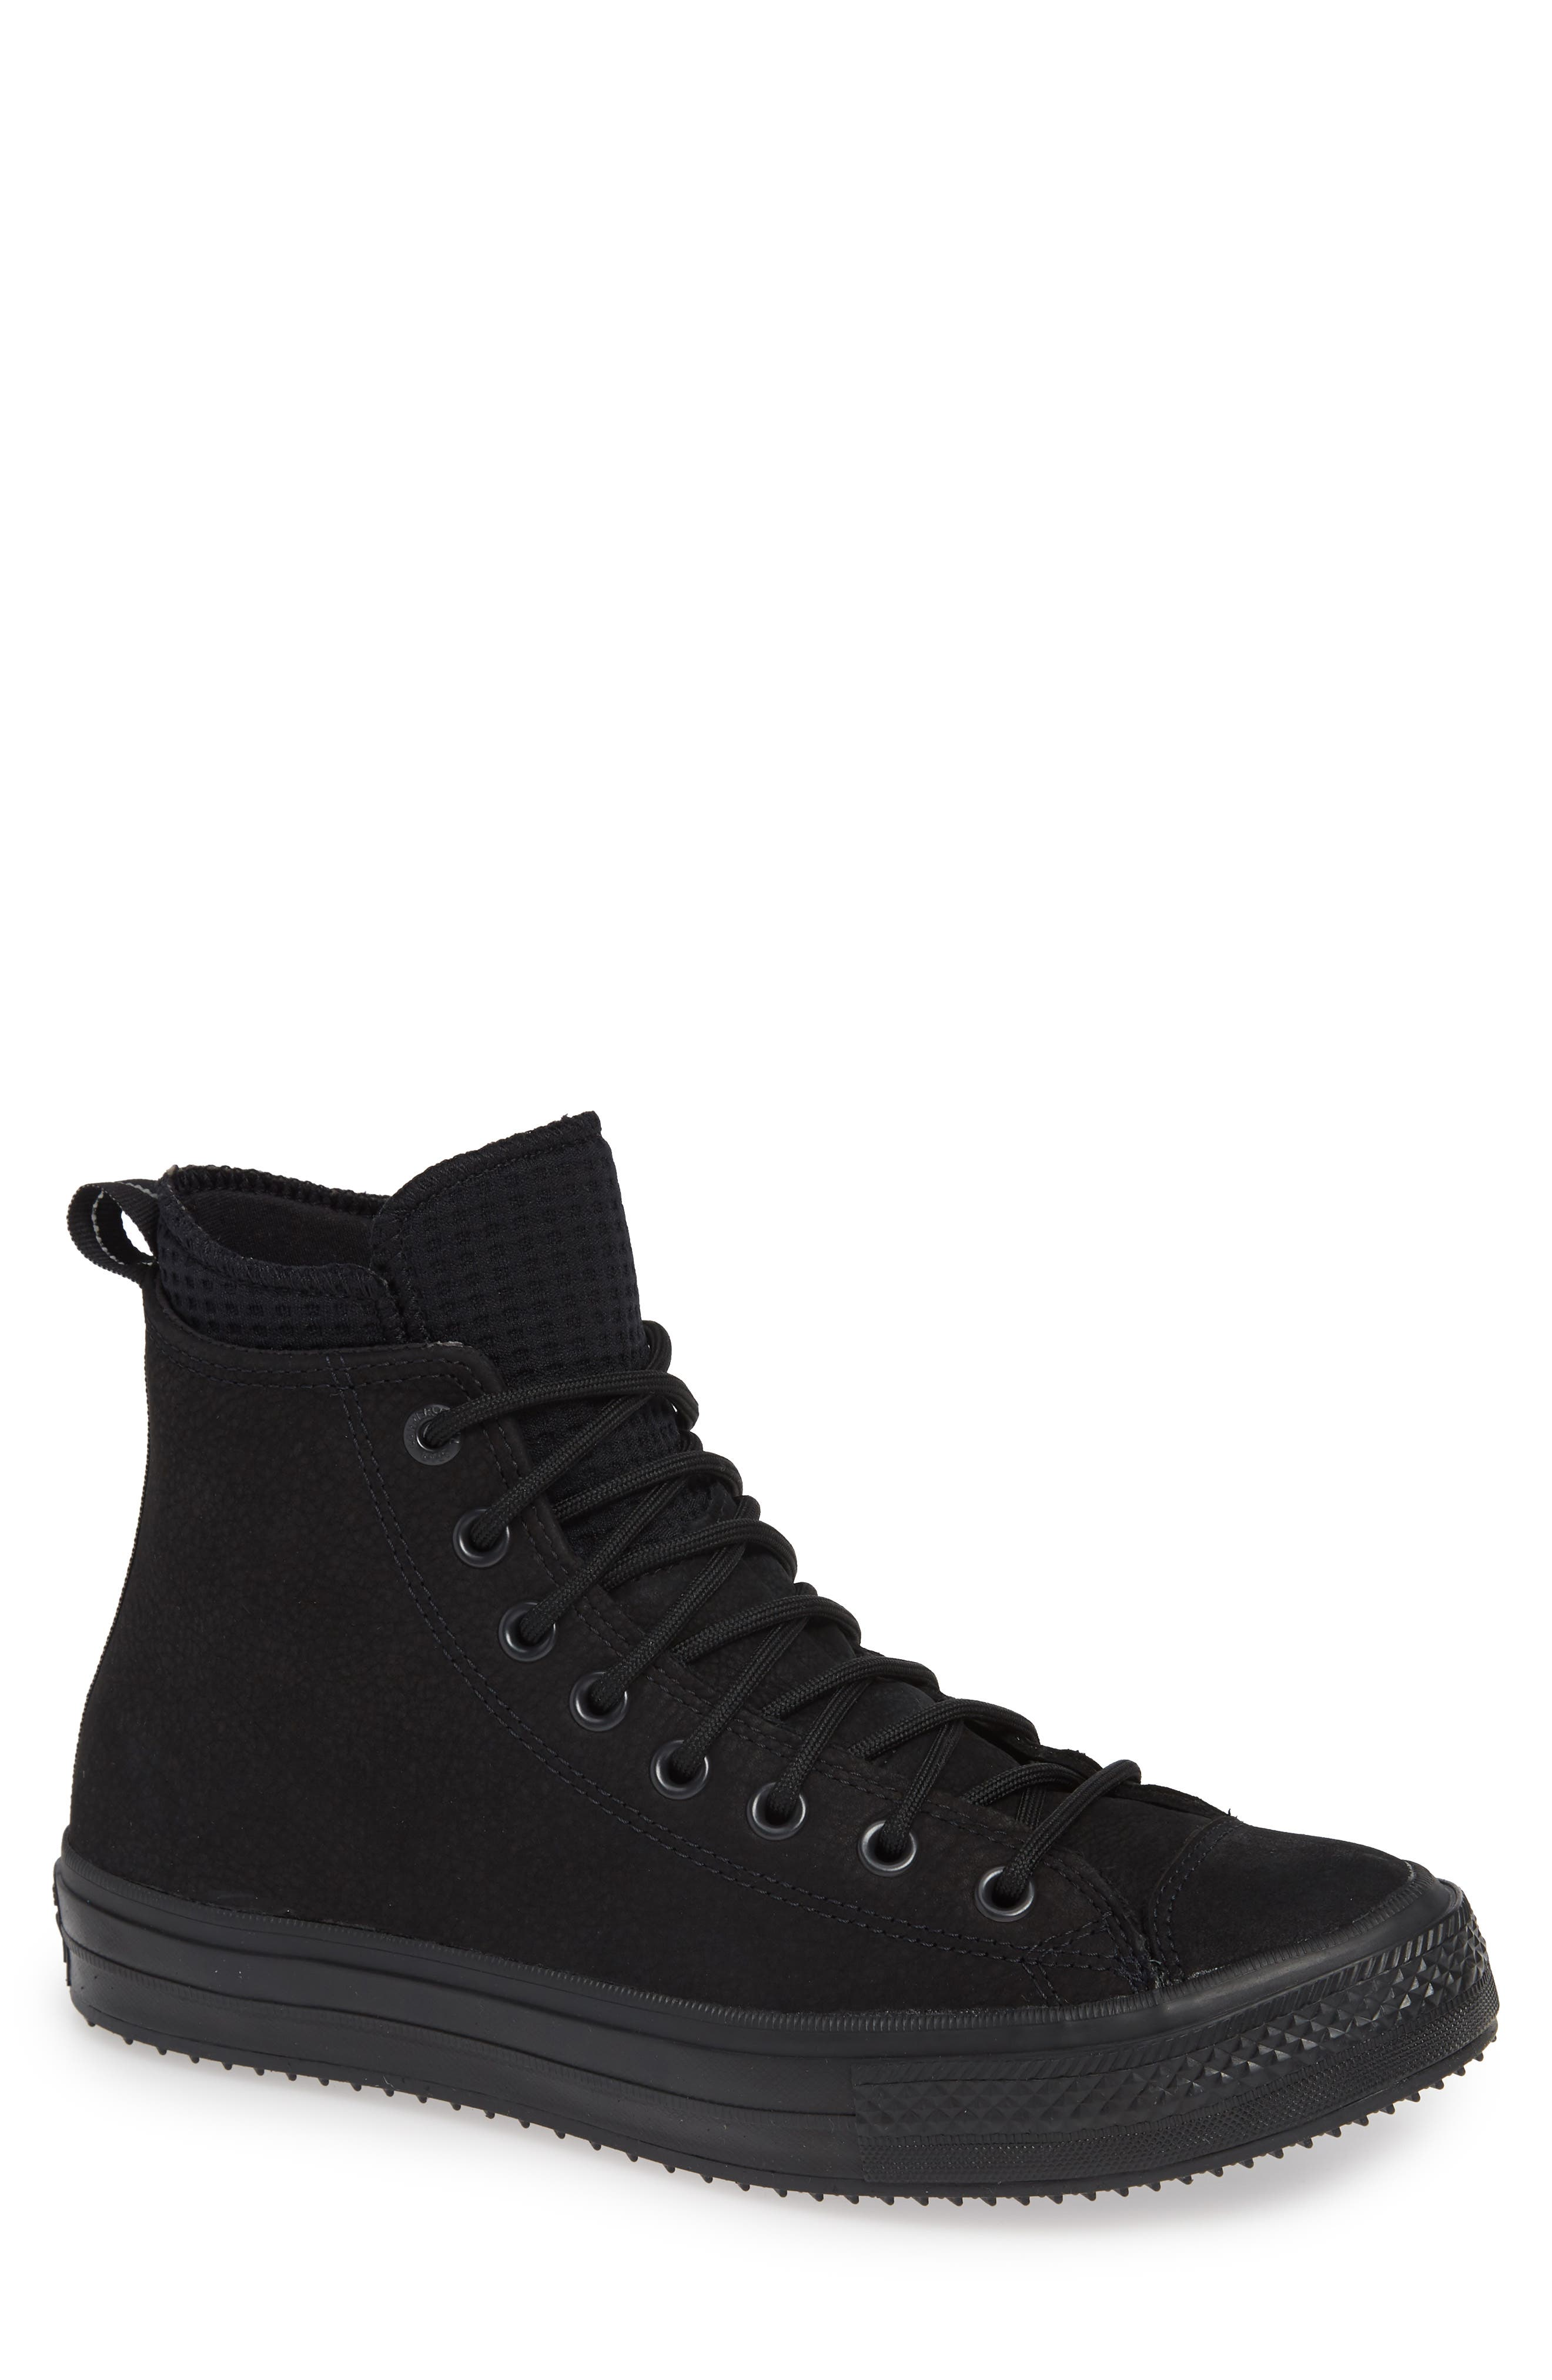 CONVERSE Chuck Taylor<sup>®</sup> All Star<sup>®</sup> Counter Climate Waterproof Sneaker, Main, color, BLACK/ BLACK/ BLACK